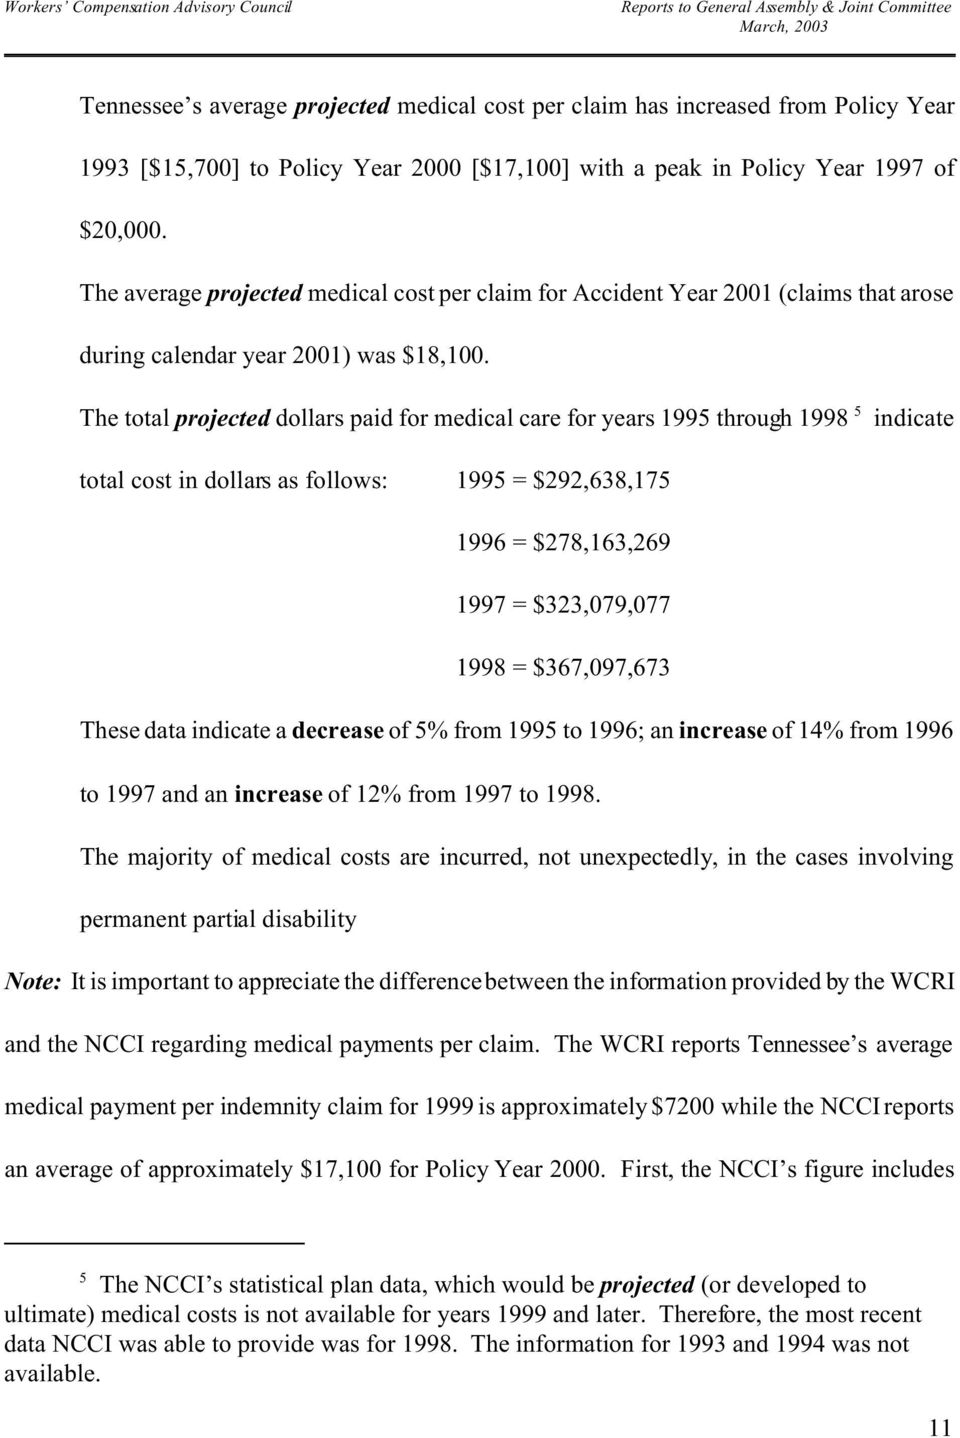 < The total projected dollars paid for medical care for years 1995 through 1998 5 indicate total cost in dollars as follows: 1995 = $292,638,175 1996 = $278,163,269 1997 = $323,079,077 1998 =